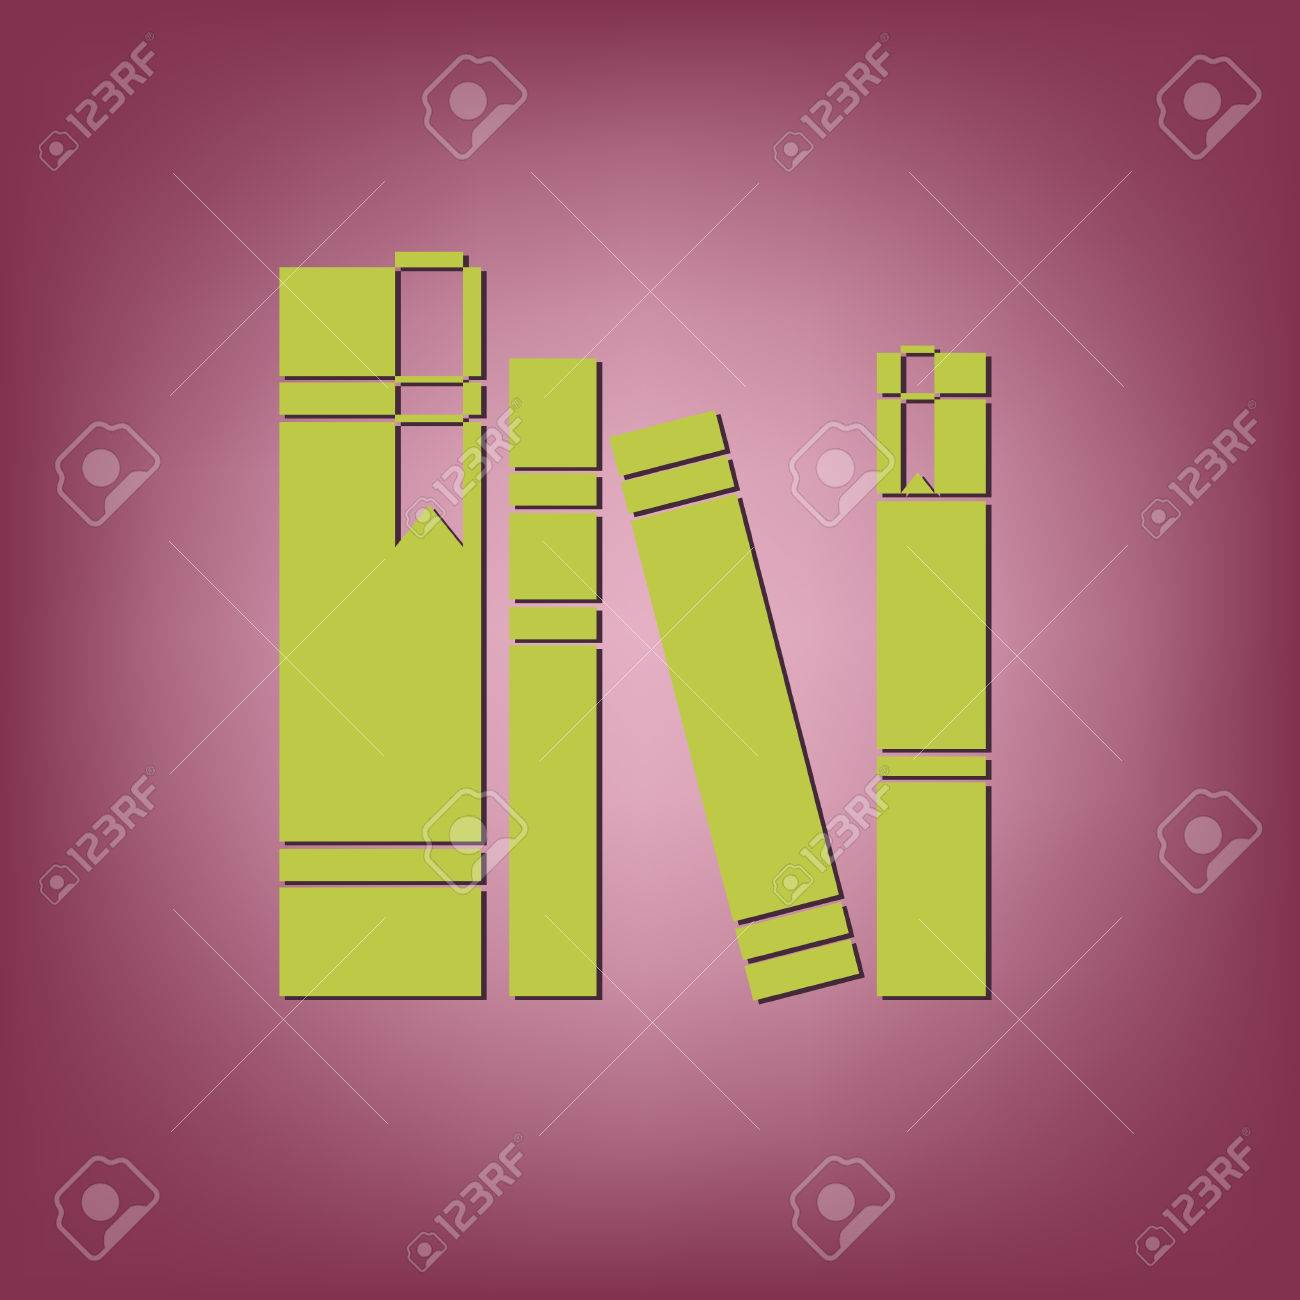 Book Spine Spines Of Books Icon Symbol Of A Science And Literature